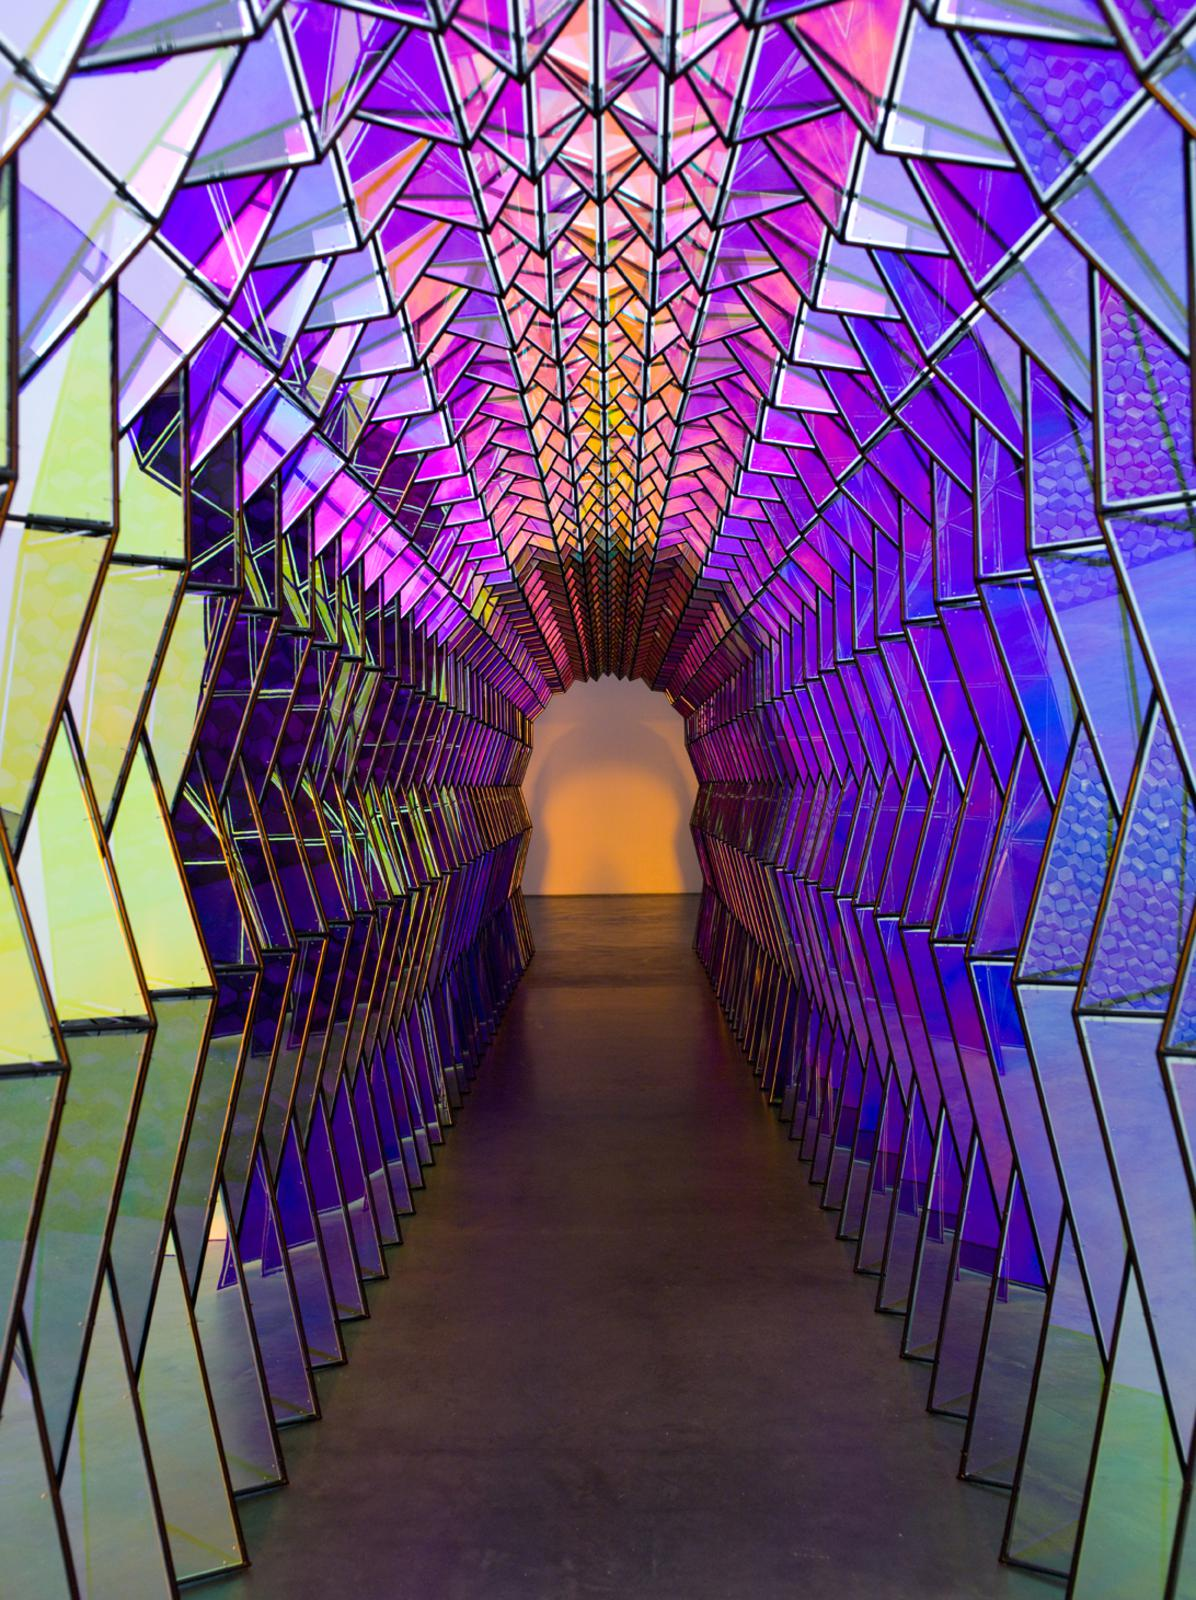 Olafur Eliasson; One-way colour tunnel, 2007; Installation view: Museum of Contemporary Art, Chicago, 2009; Photo: Nathan Keay / Courtesy of Museum of Contemporary Art Chicago © 2007 Olafur Eliasson